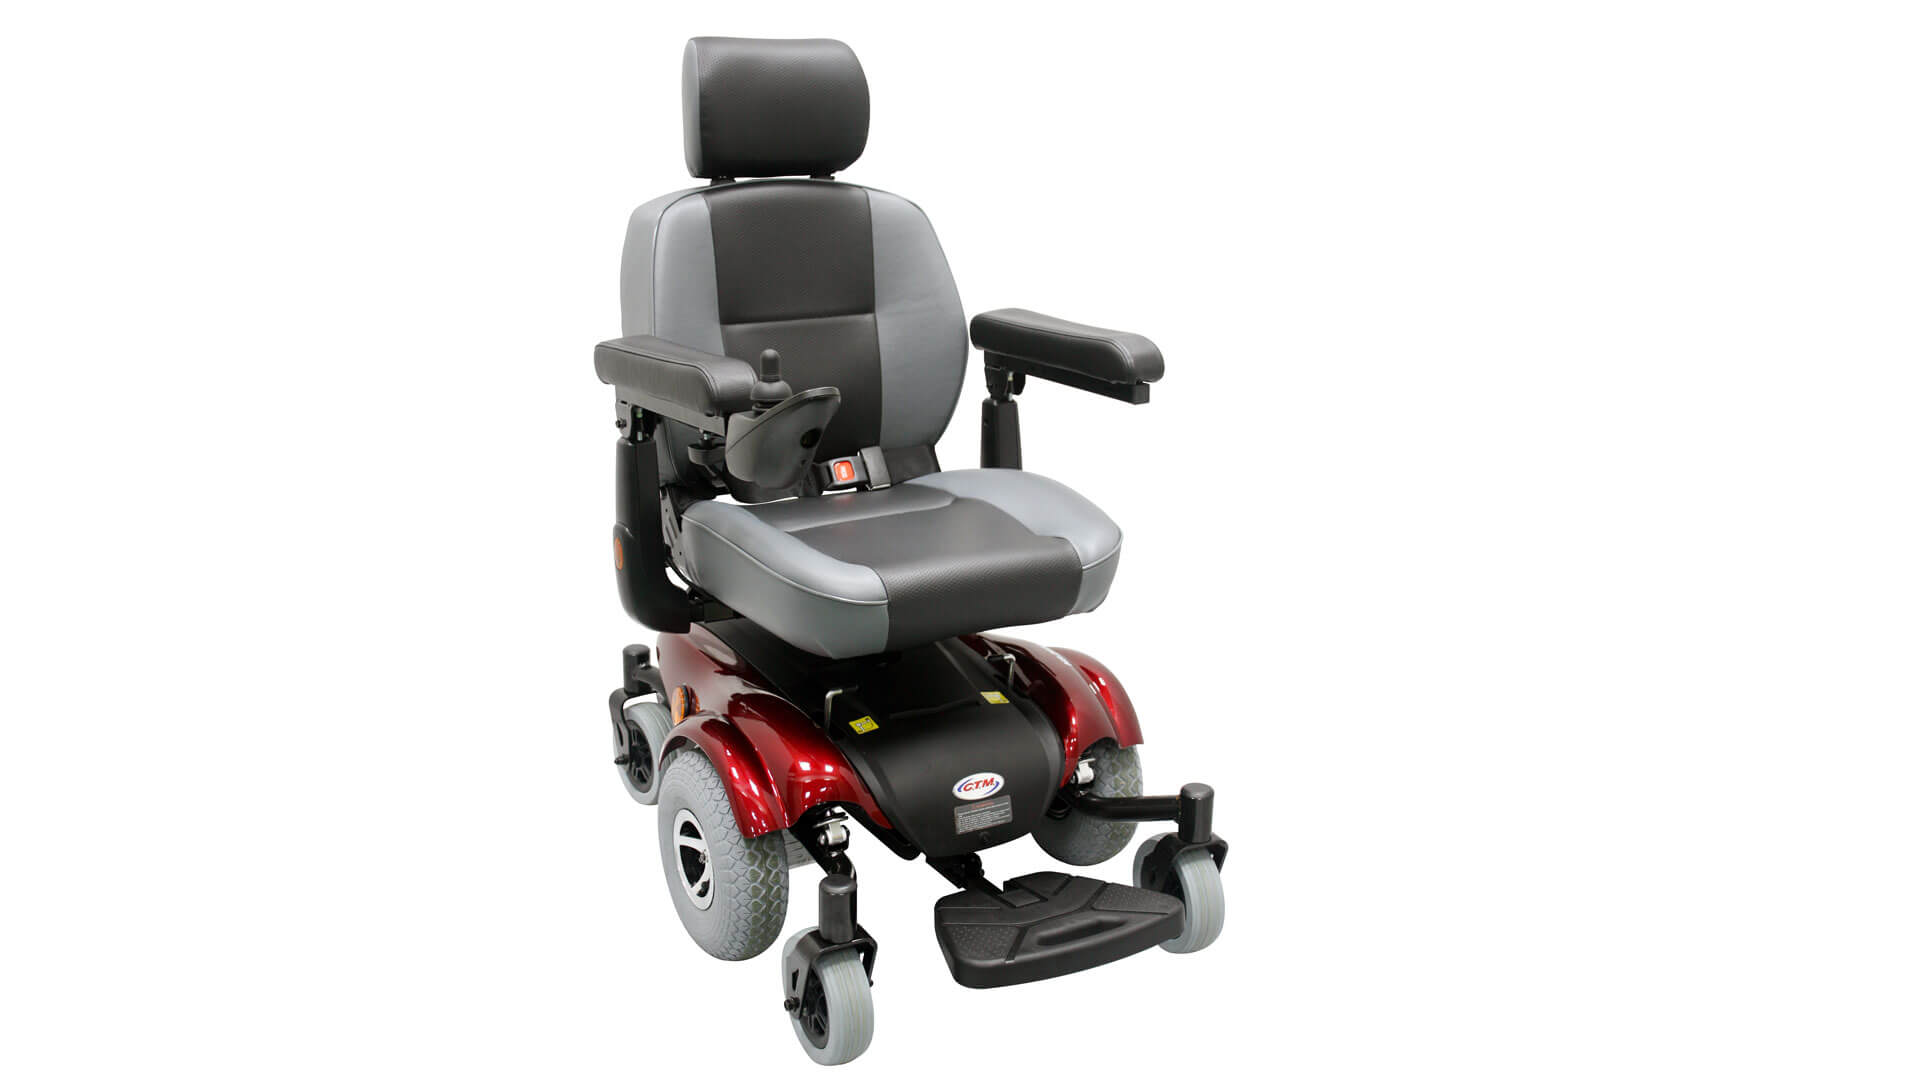 Wheel Power Chair Review